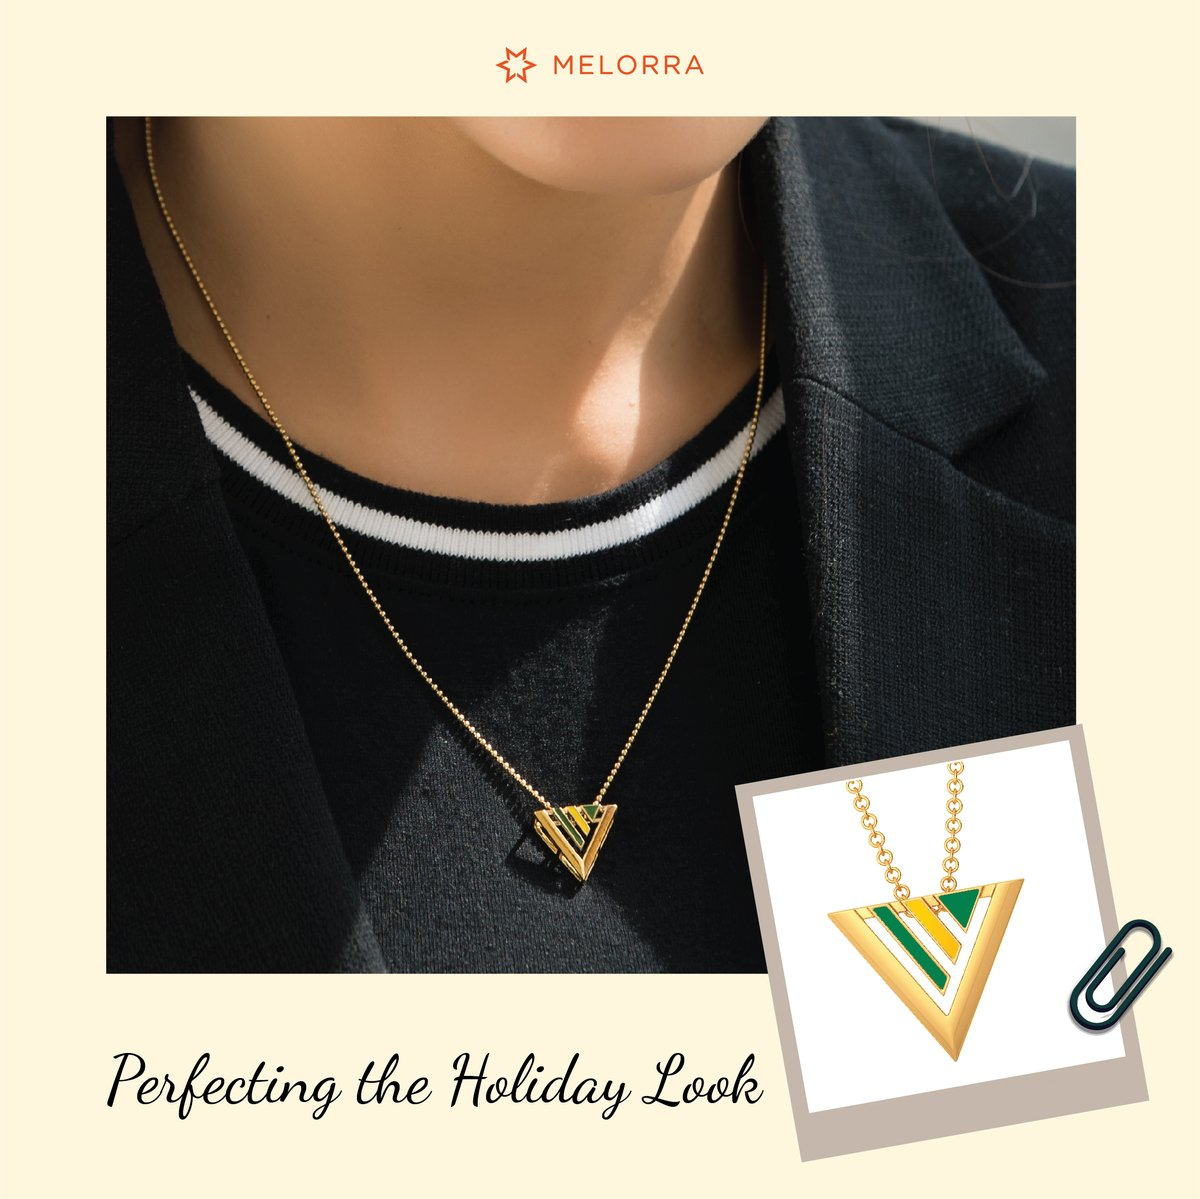 Style your Holiday look with Melorra! 😎  Get stylish here >   ✔️ 7000+ Lightweight Jewellery Designs ✔️ Easy 30-Day Returns ✔️ 100% Certified Jewellery  #Melorra #EverydayFineJewellery #TrendInspired #AffordableGold #HolidayLook